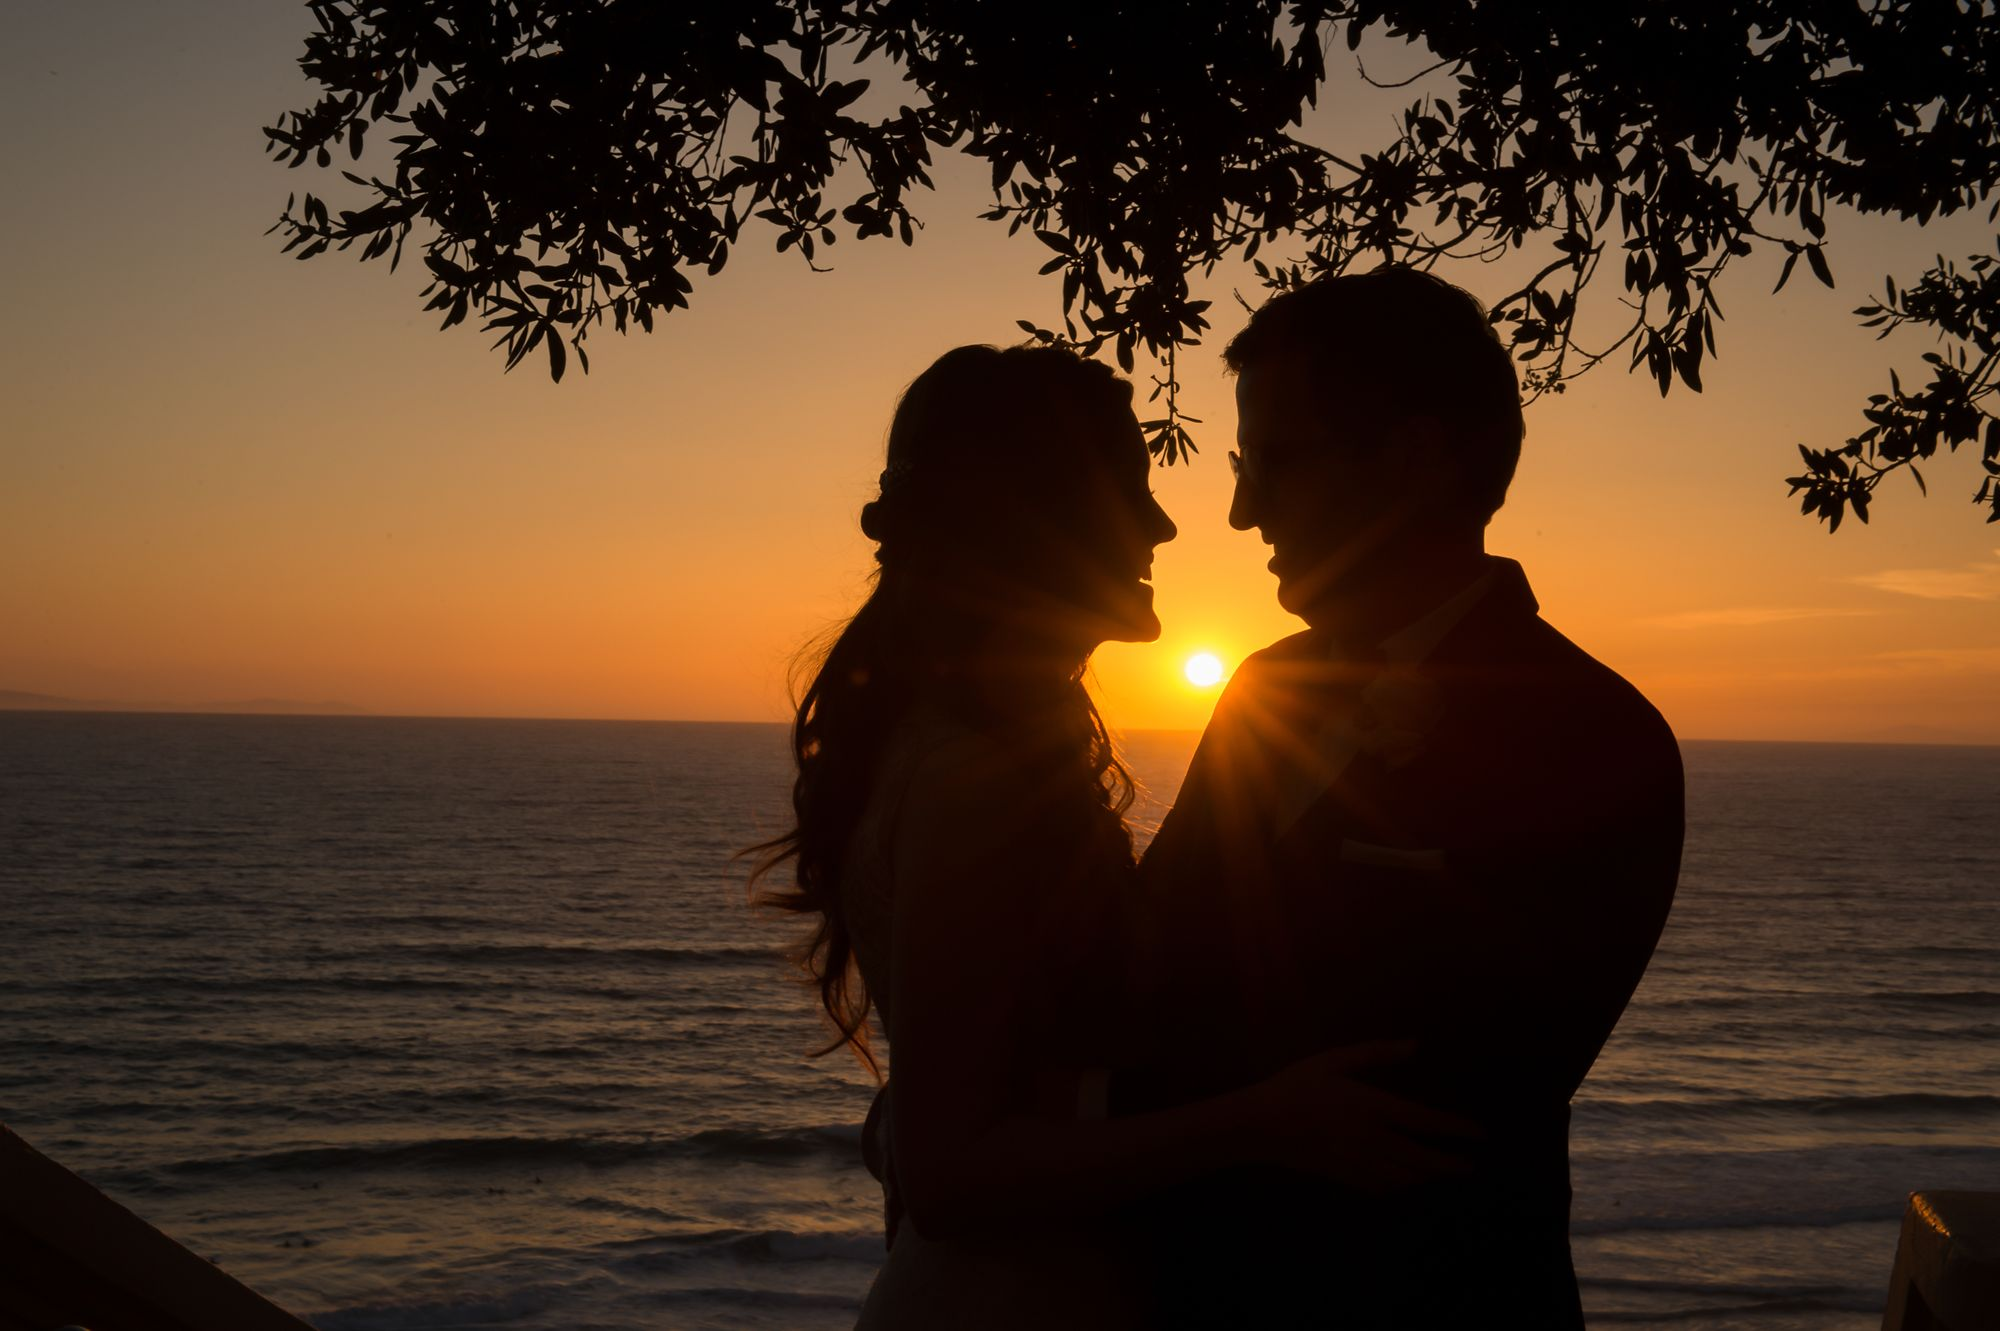 Couple embracing at sunset